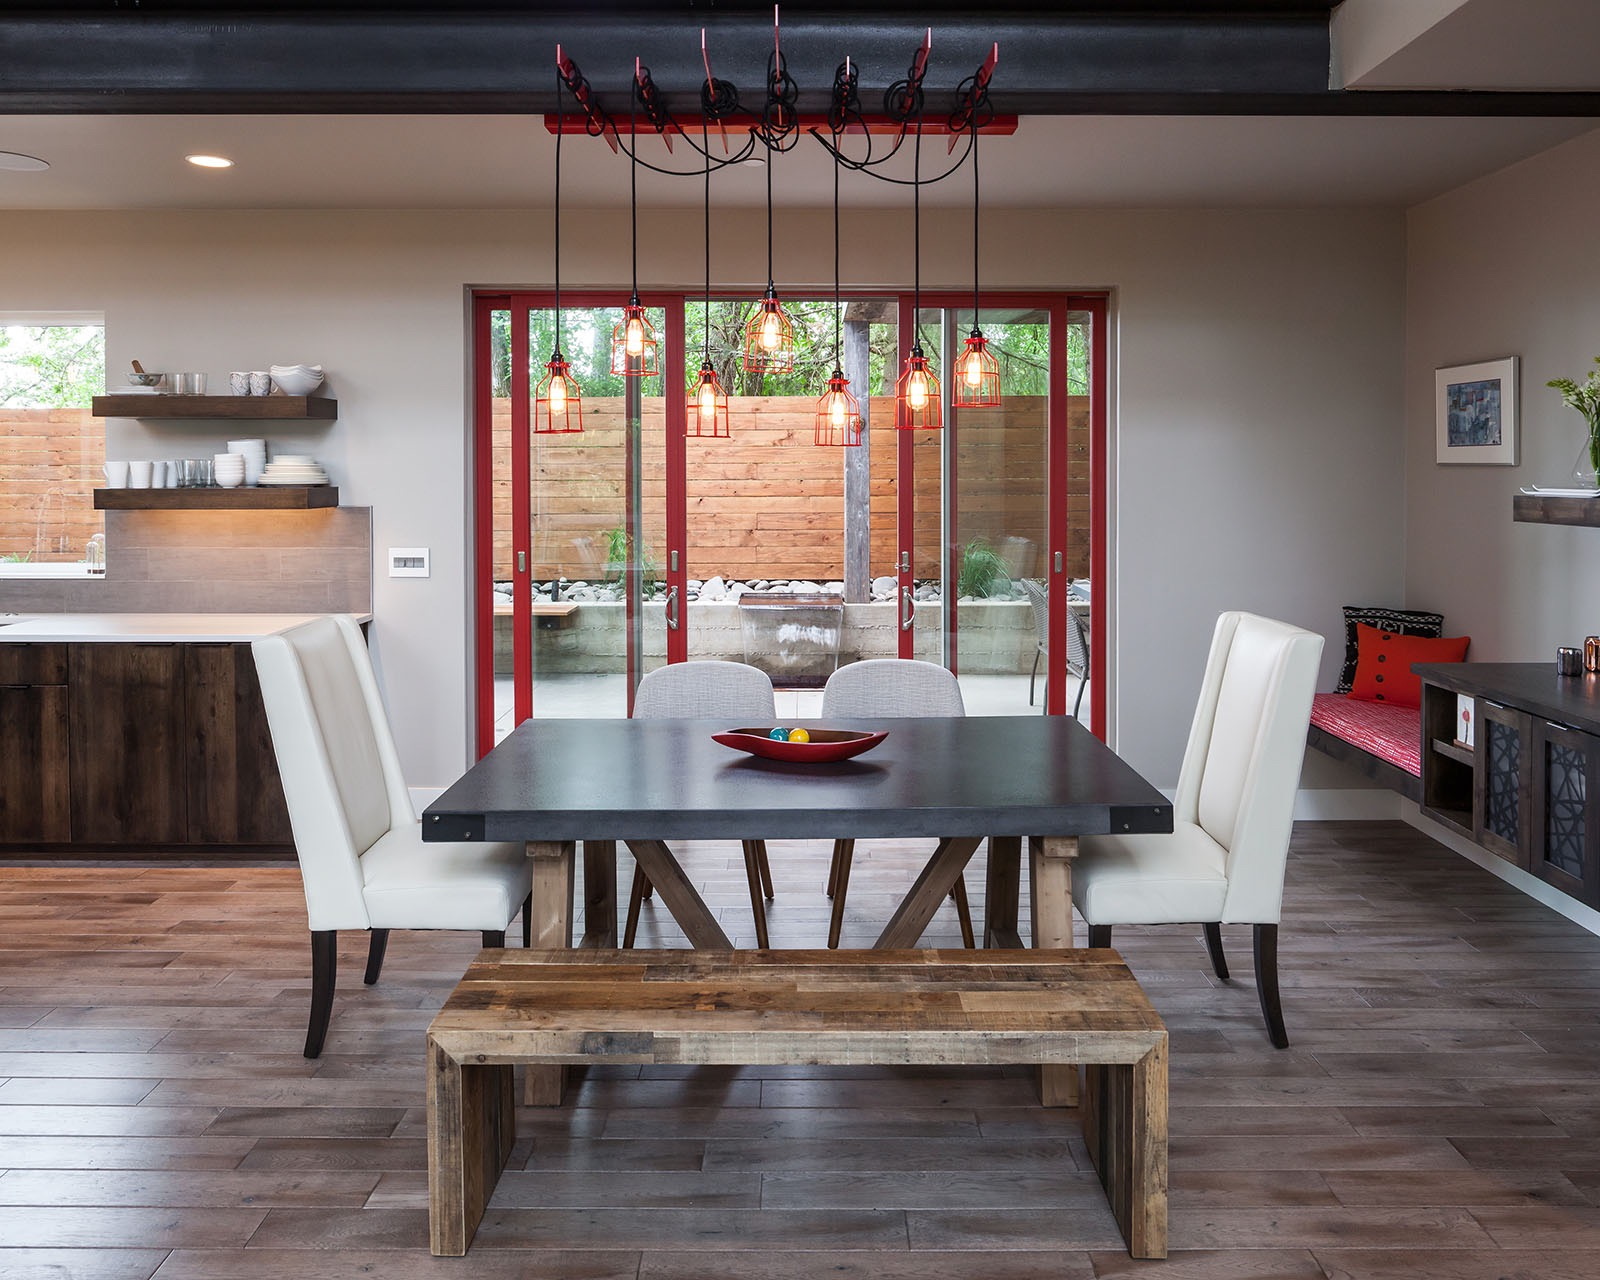 Contemporary Modern Dining Room Features Red Sliding Doors And Creative Light Fixture (View 1 of 13)